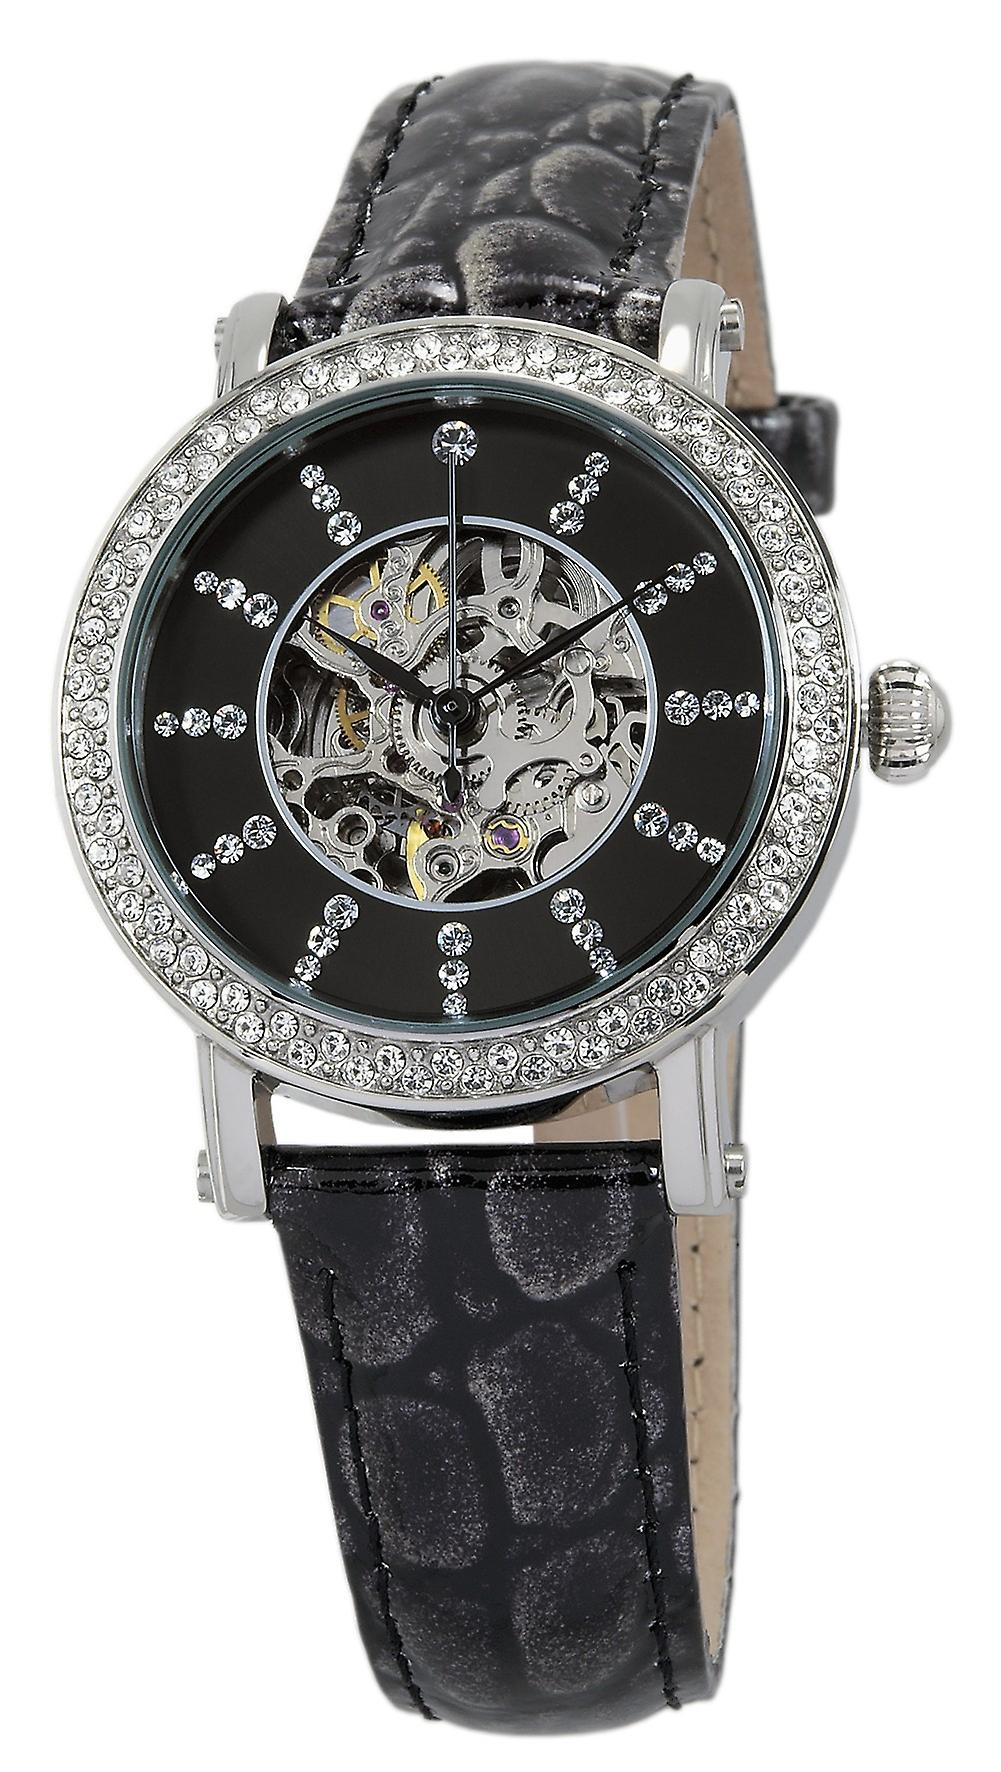 Reichenbach Ladies automatic watch Iwersen, RB507-122